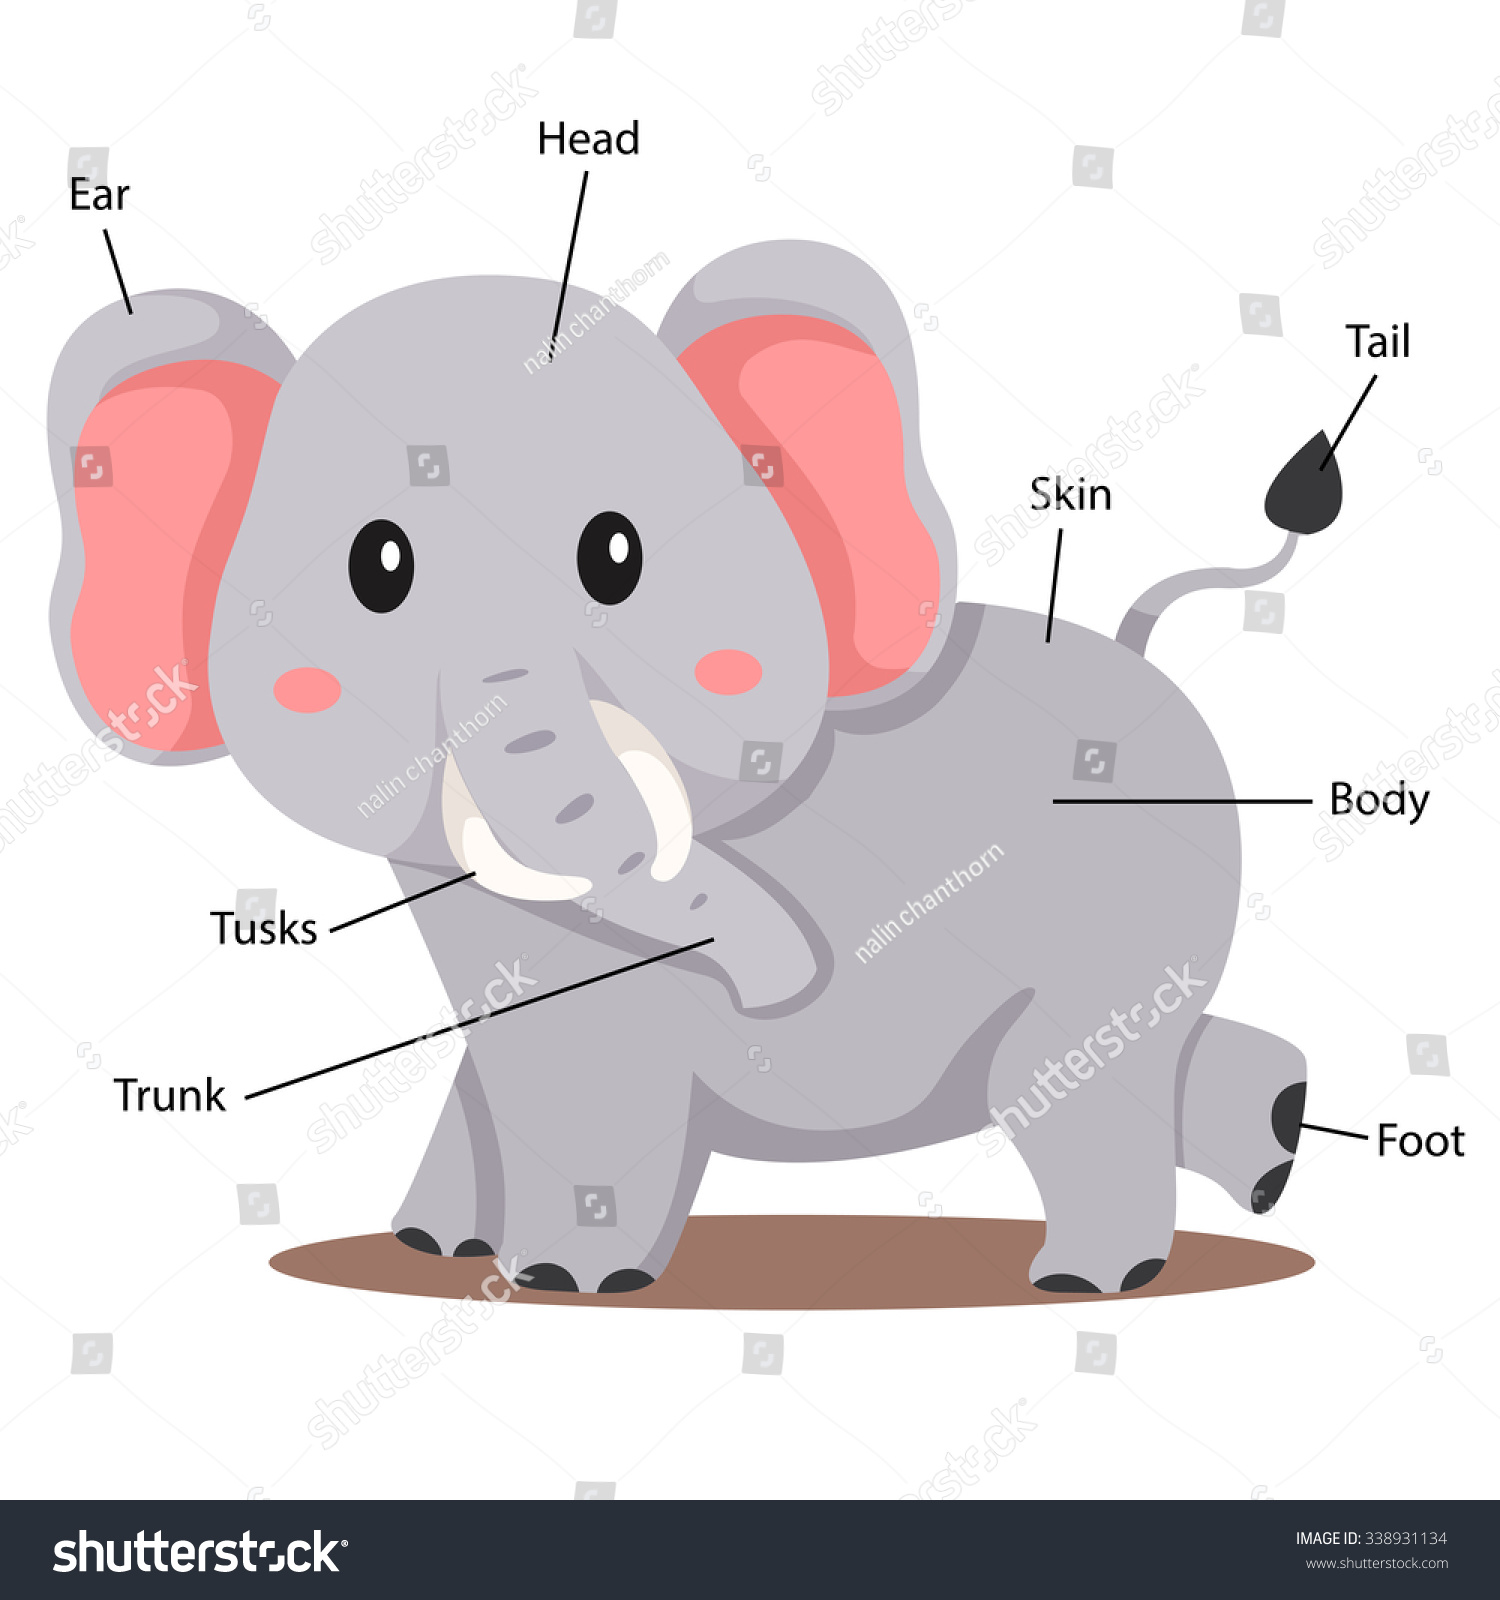 Illustrator Elephant Body Part Stock Vector